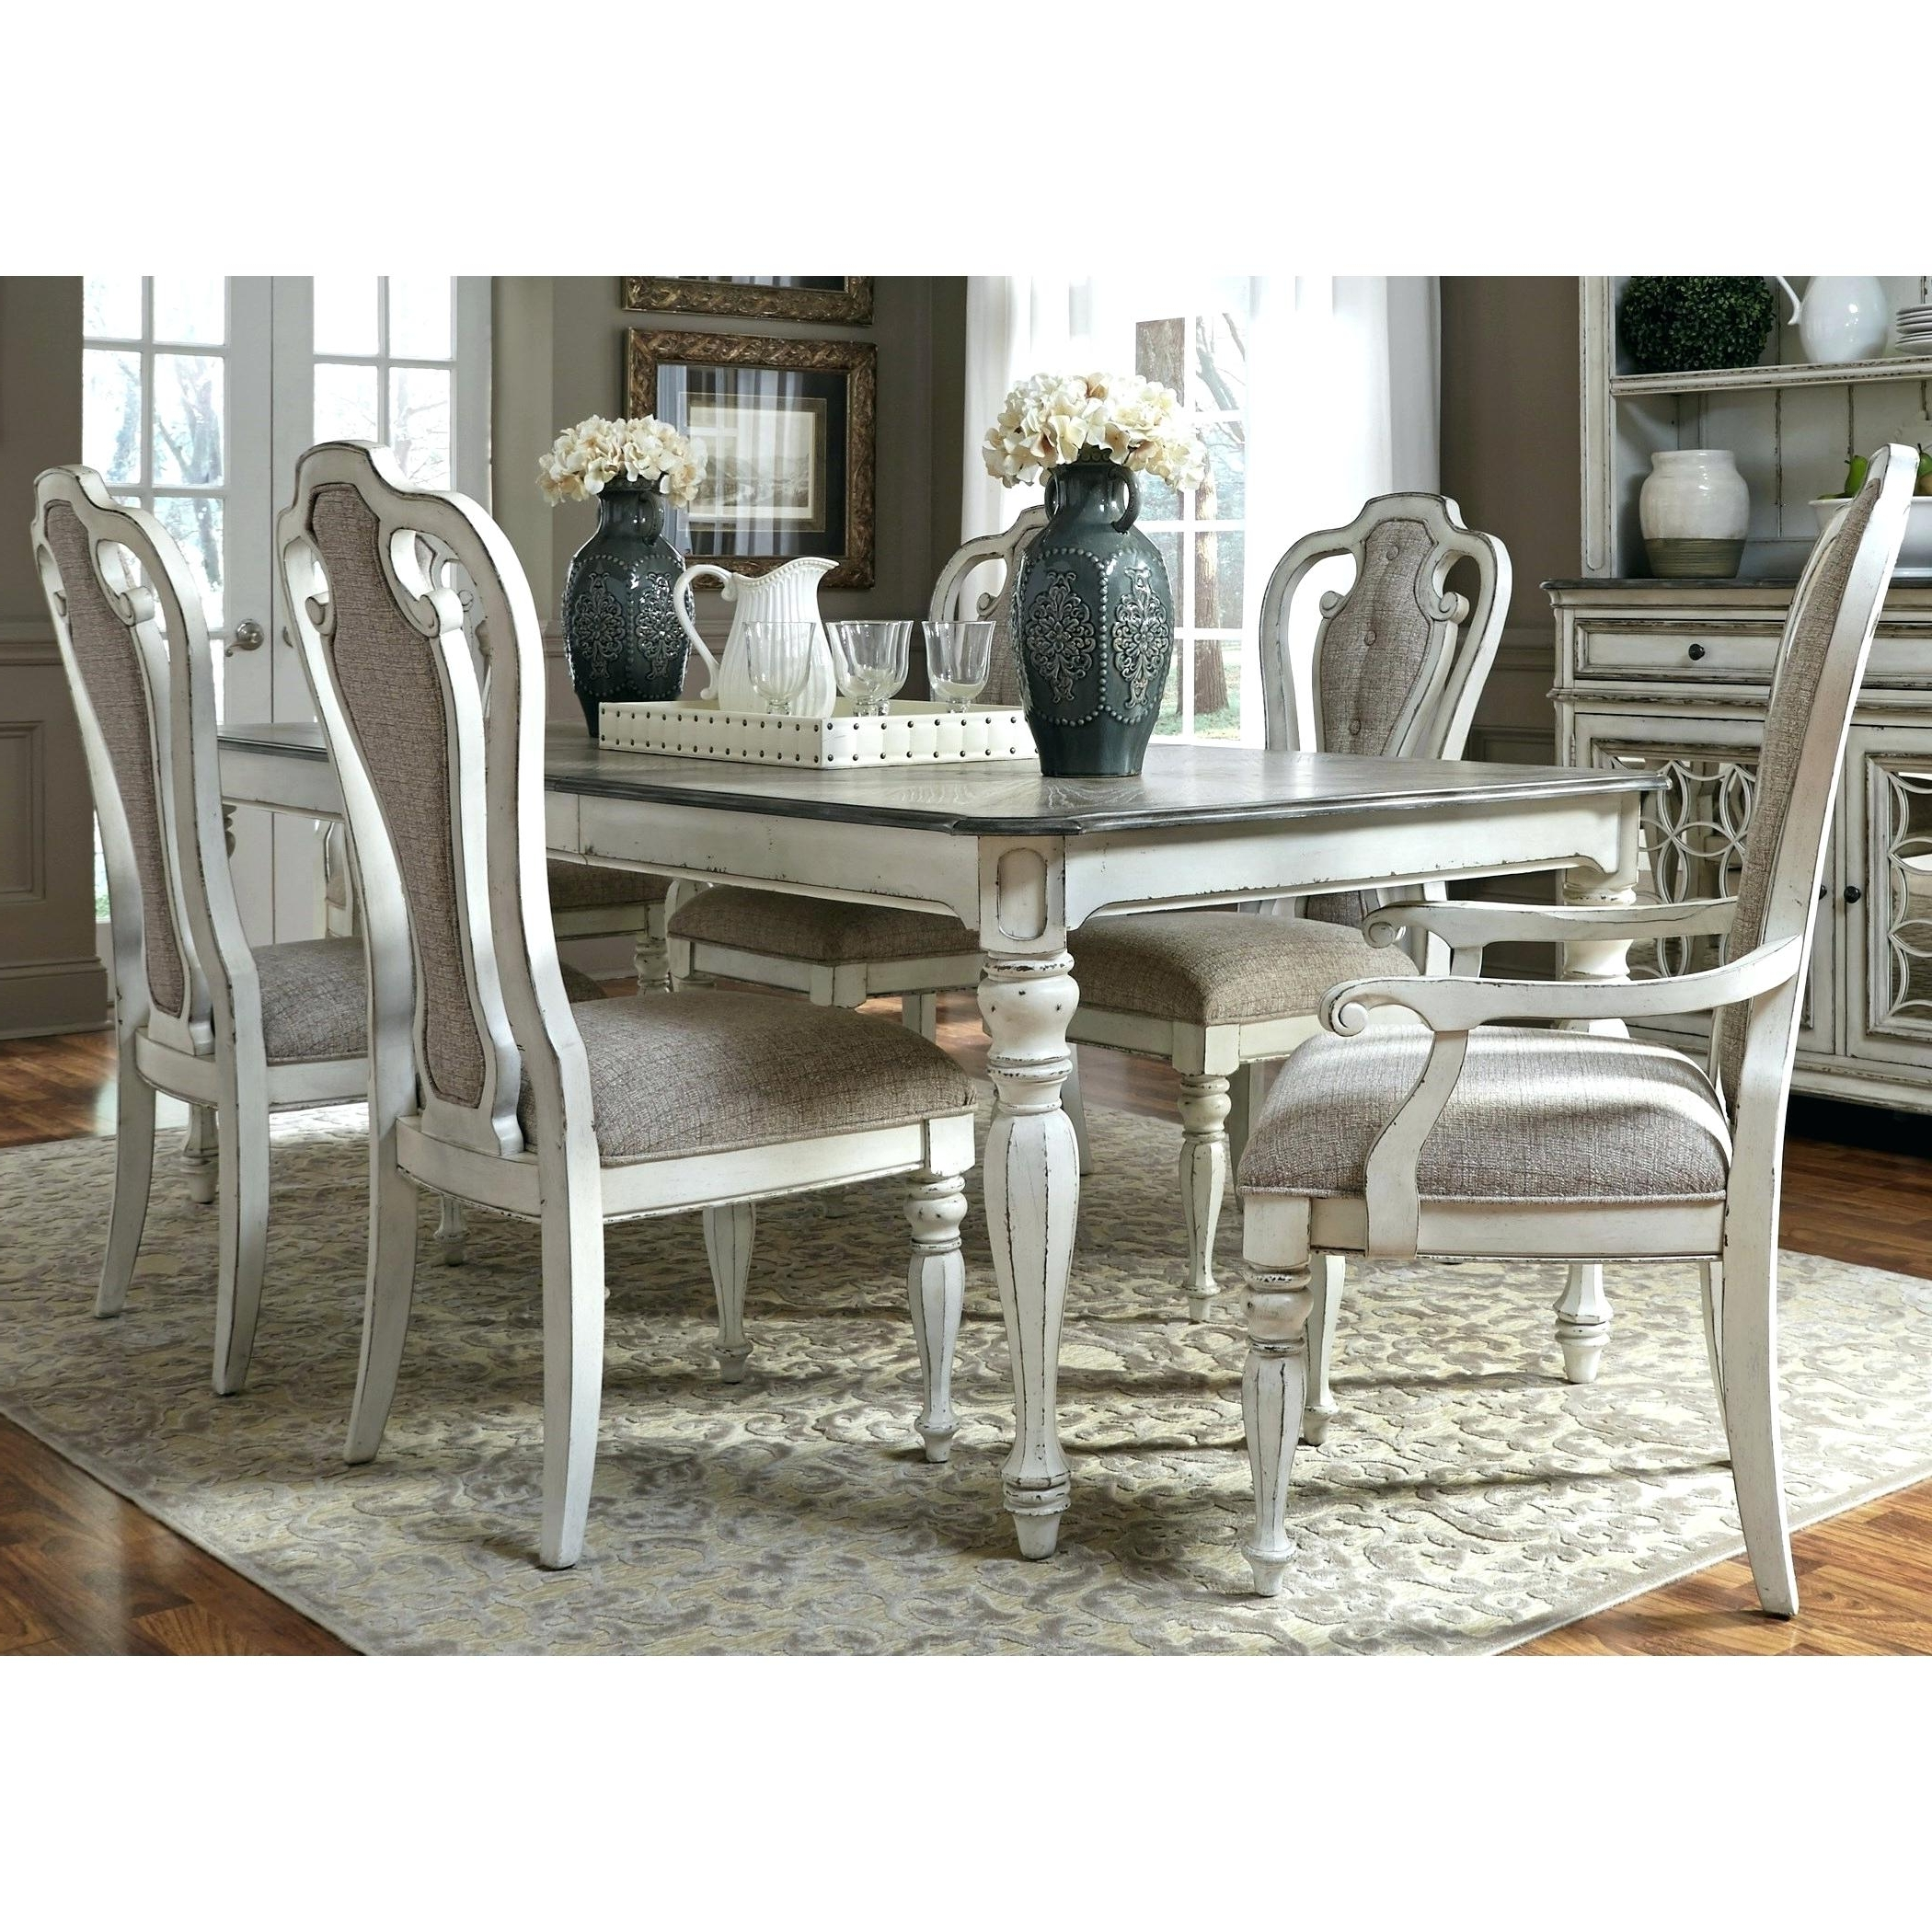 Magnolia Dining Chairs Proximity Dining Table Magnolia Market Dining Within Widely Used Magnolia Home Top Tier Round Dining Tables (View 9 of 25)